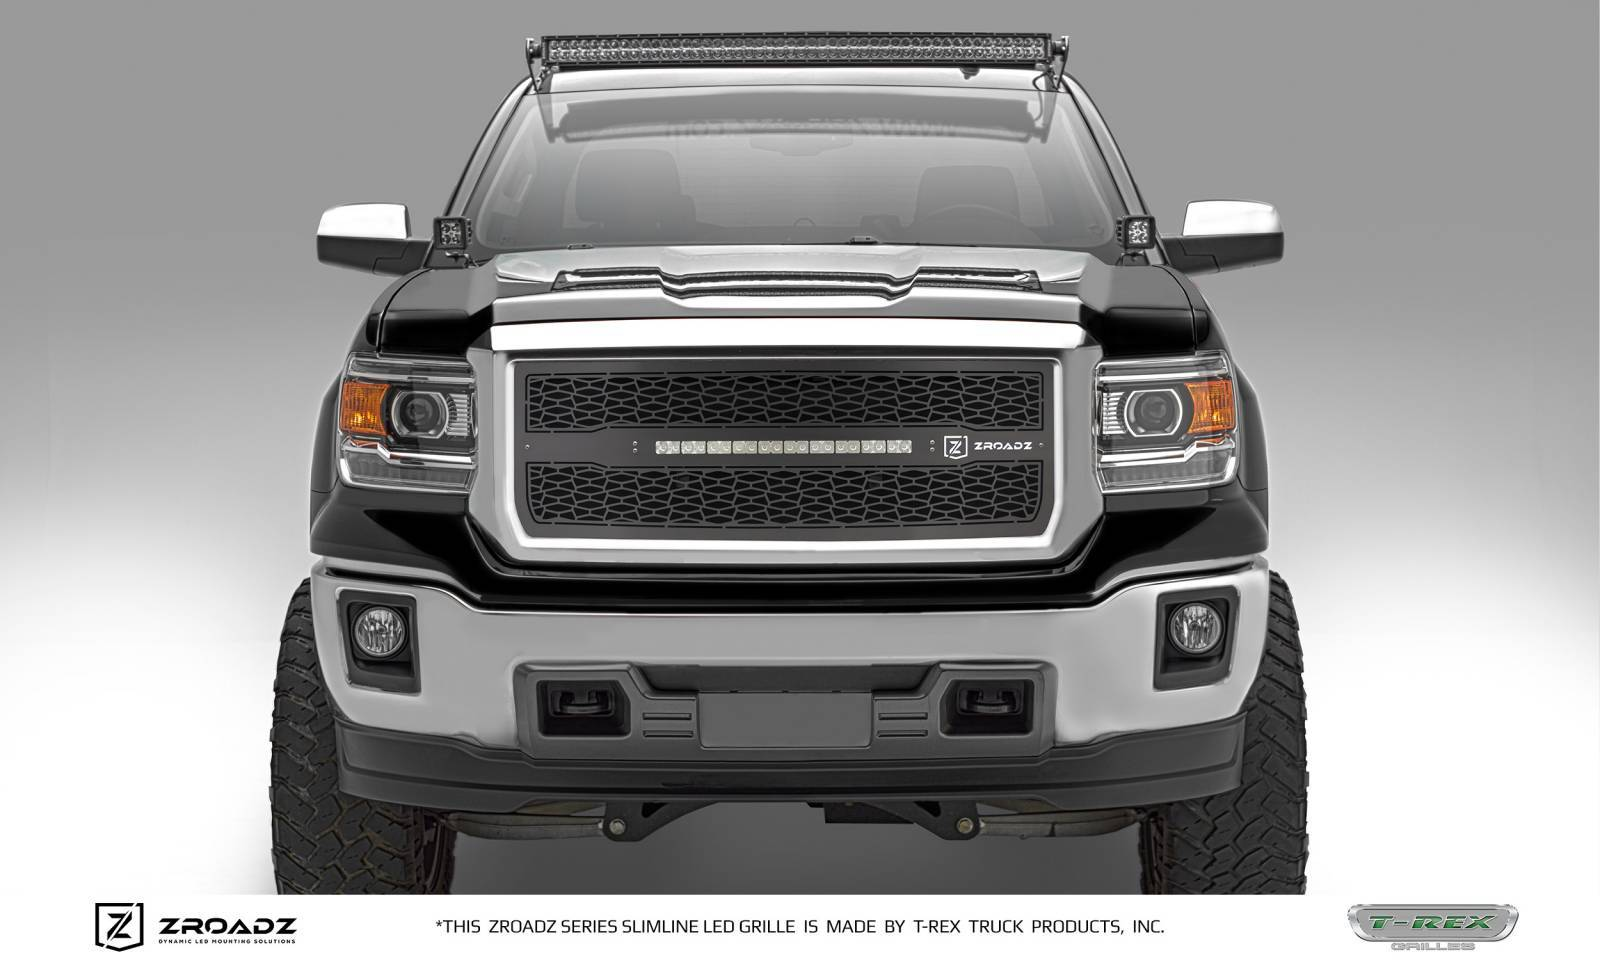 T rex gmc sierra 1500 zroadz series main insert grille w one 20 inch slim line single row led light bar includes universal wiring harness part